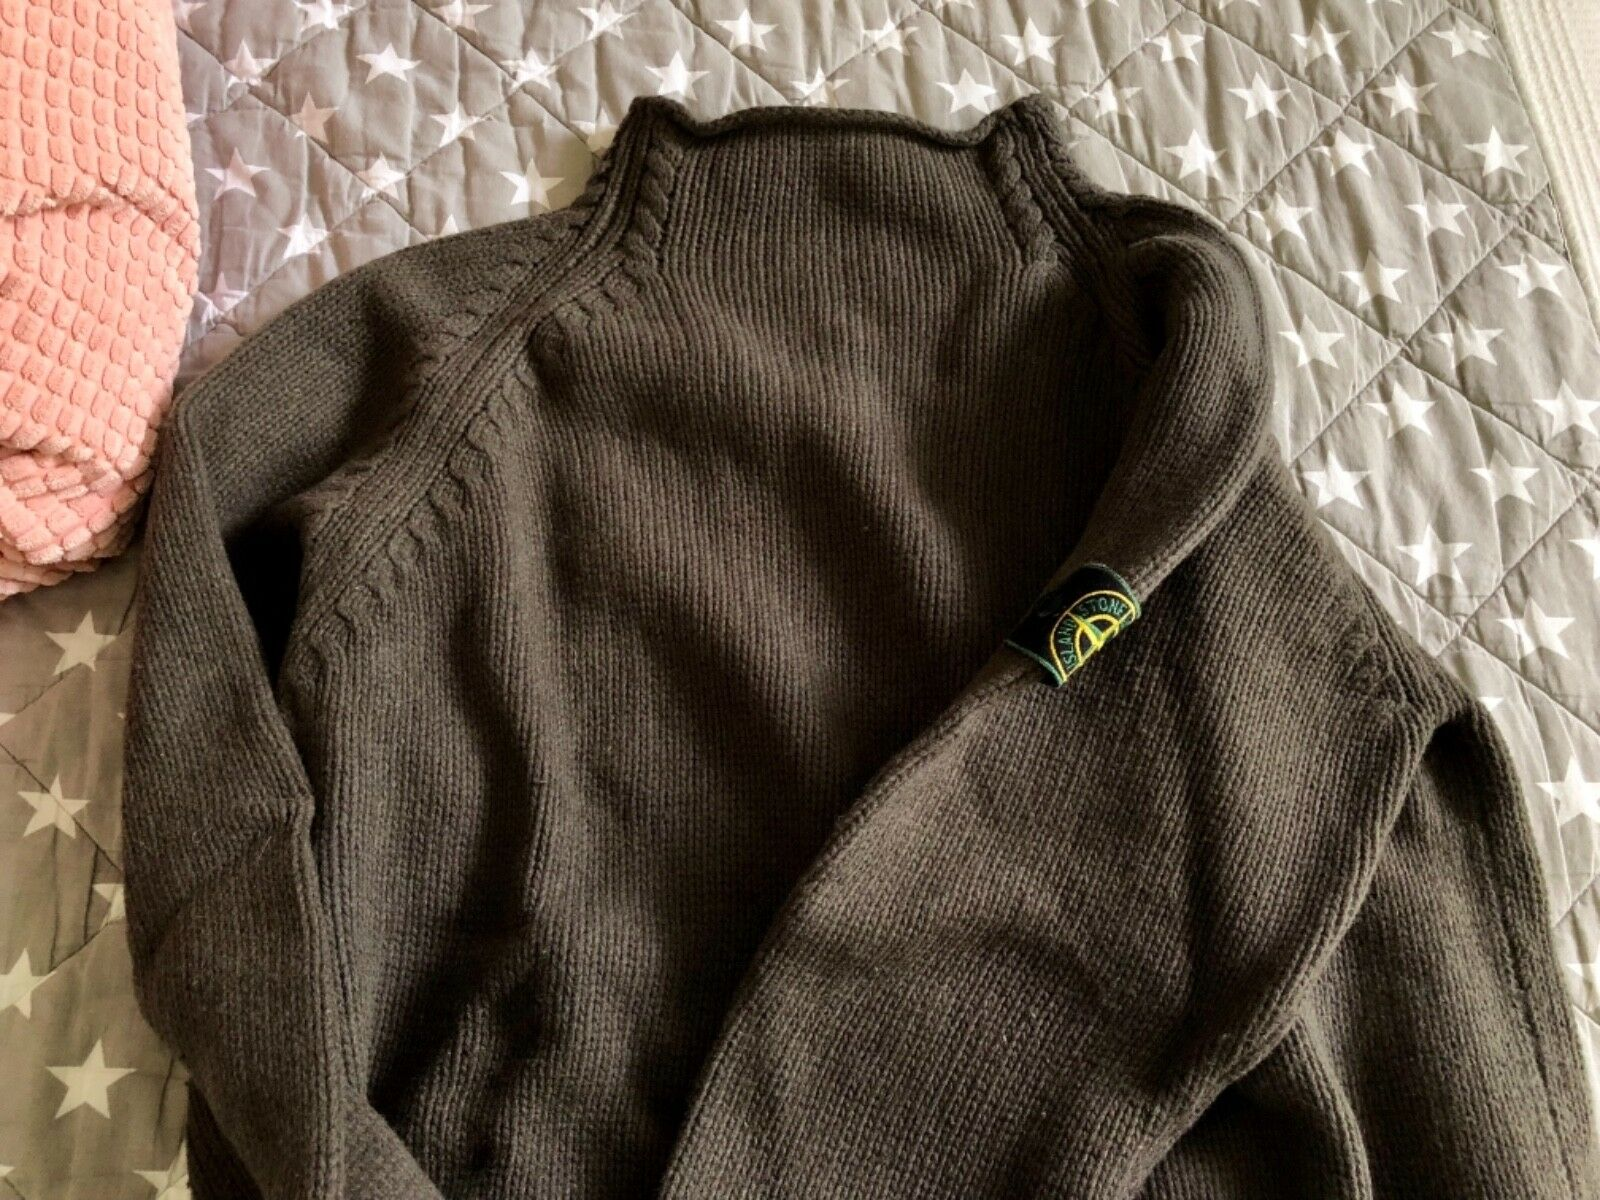 Stone Island Pullover Grün badge 1997 great conditions ⚓️⚜️